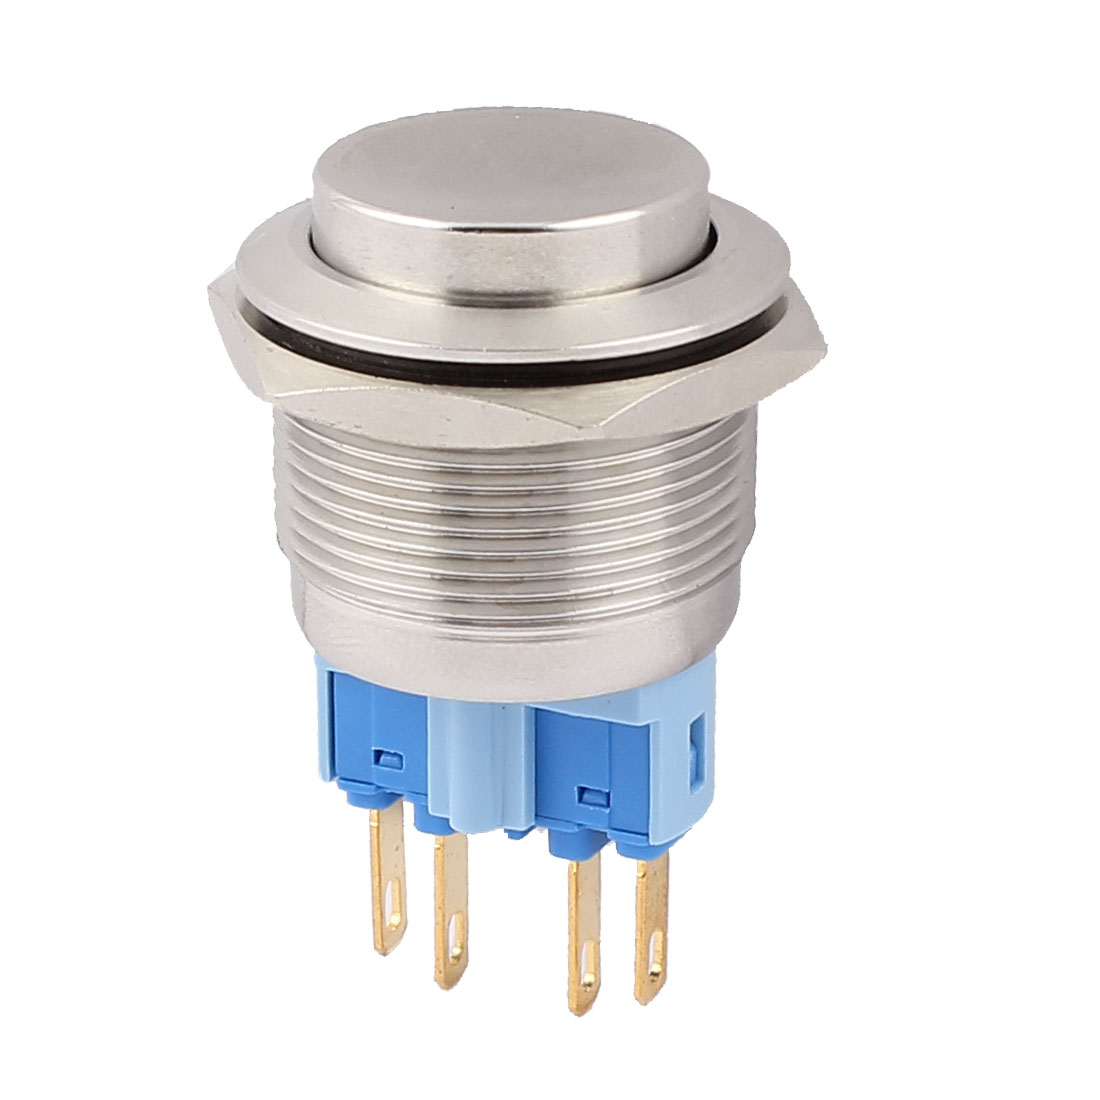 22mm Mounted Thread 4 Pins DPST High Head Momentary Push Button Switch